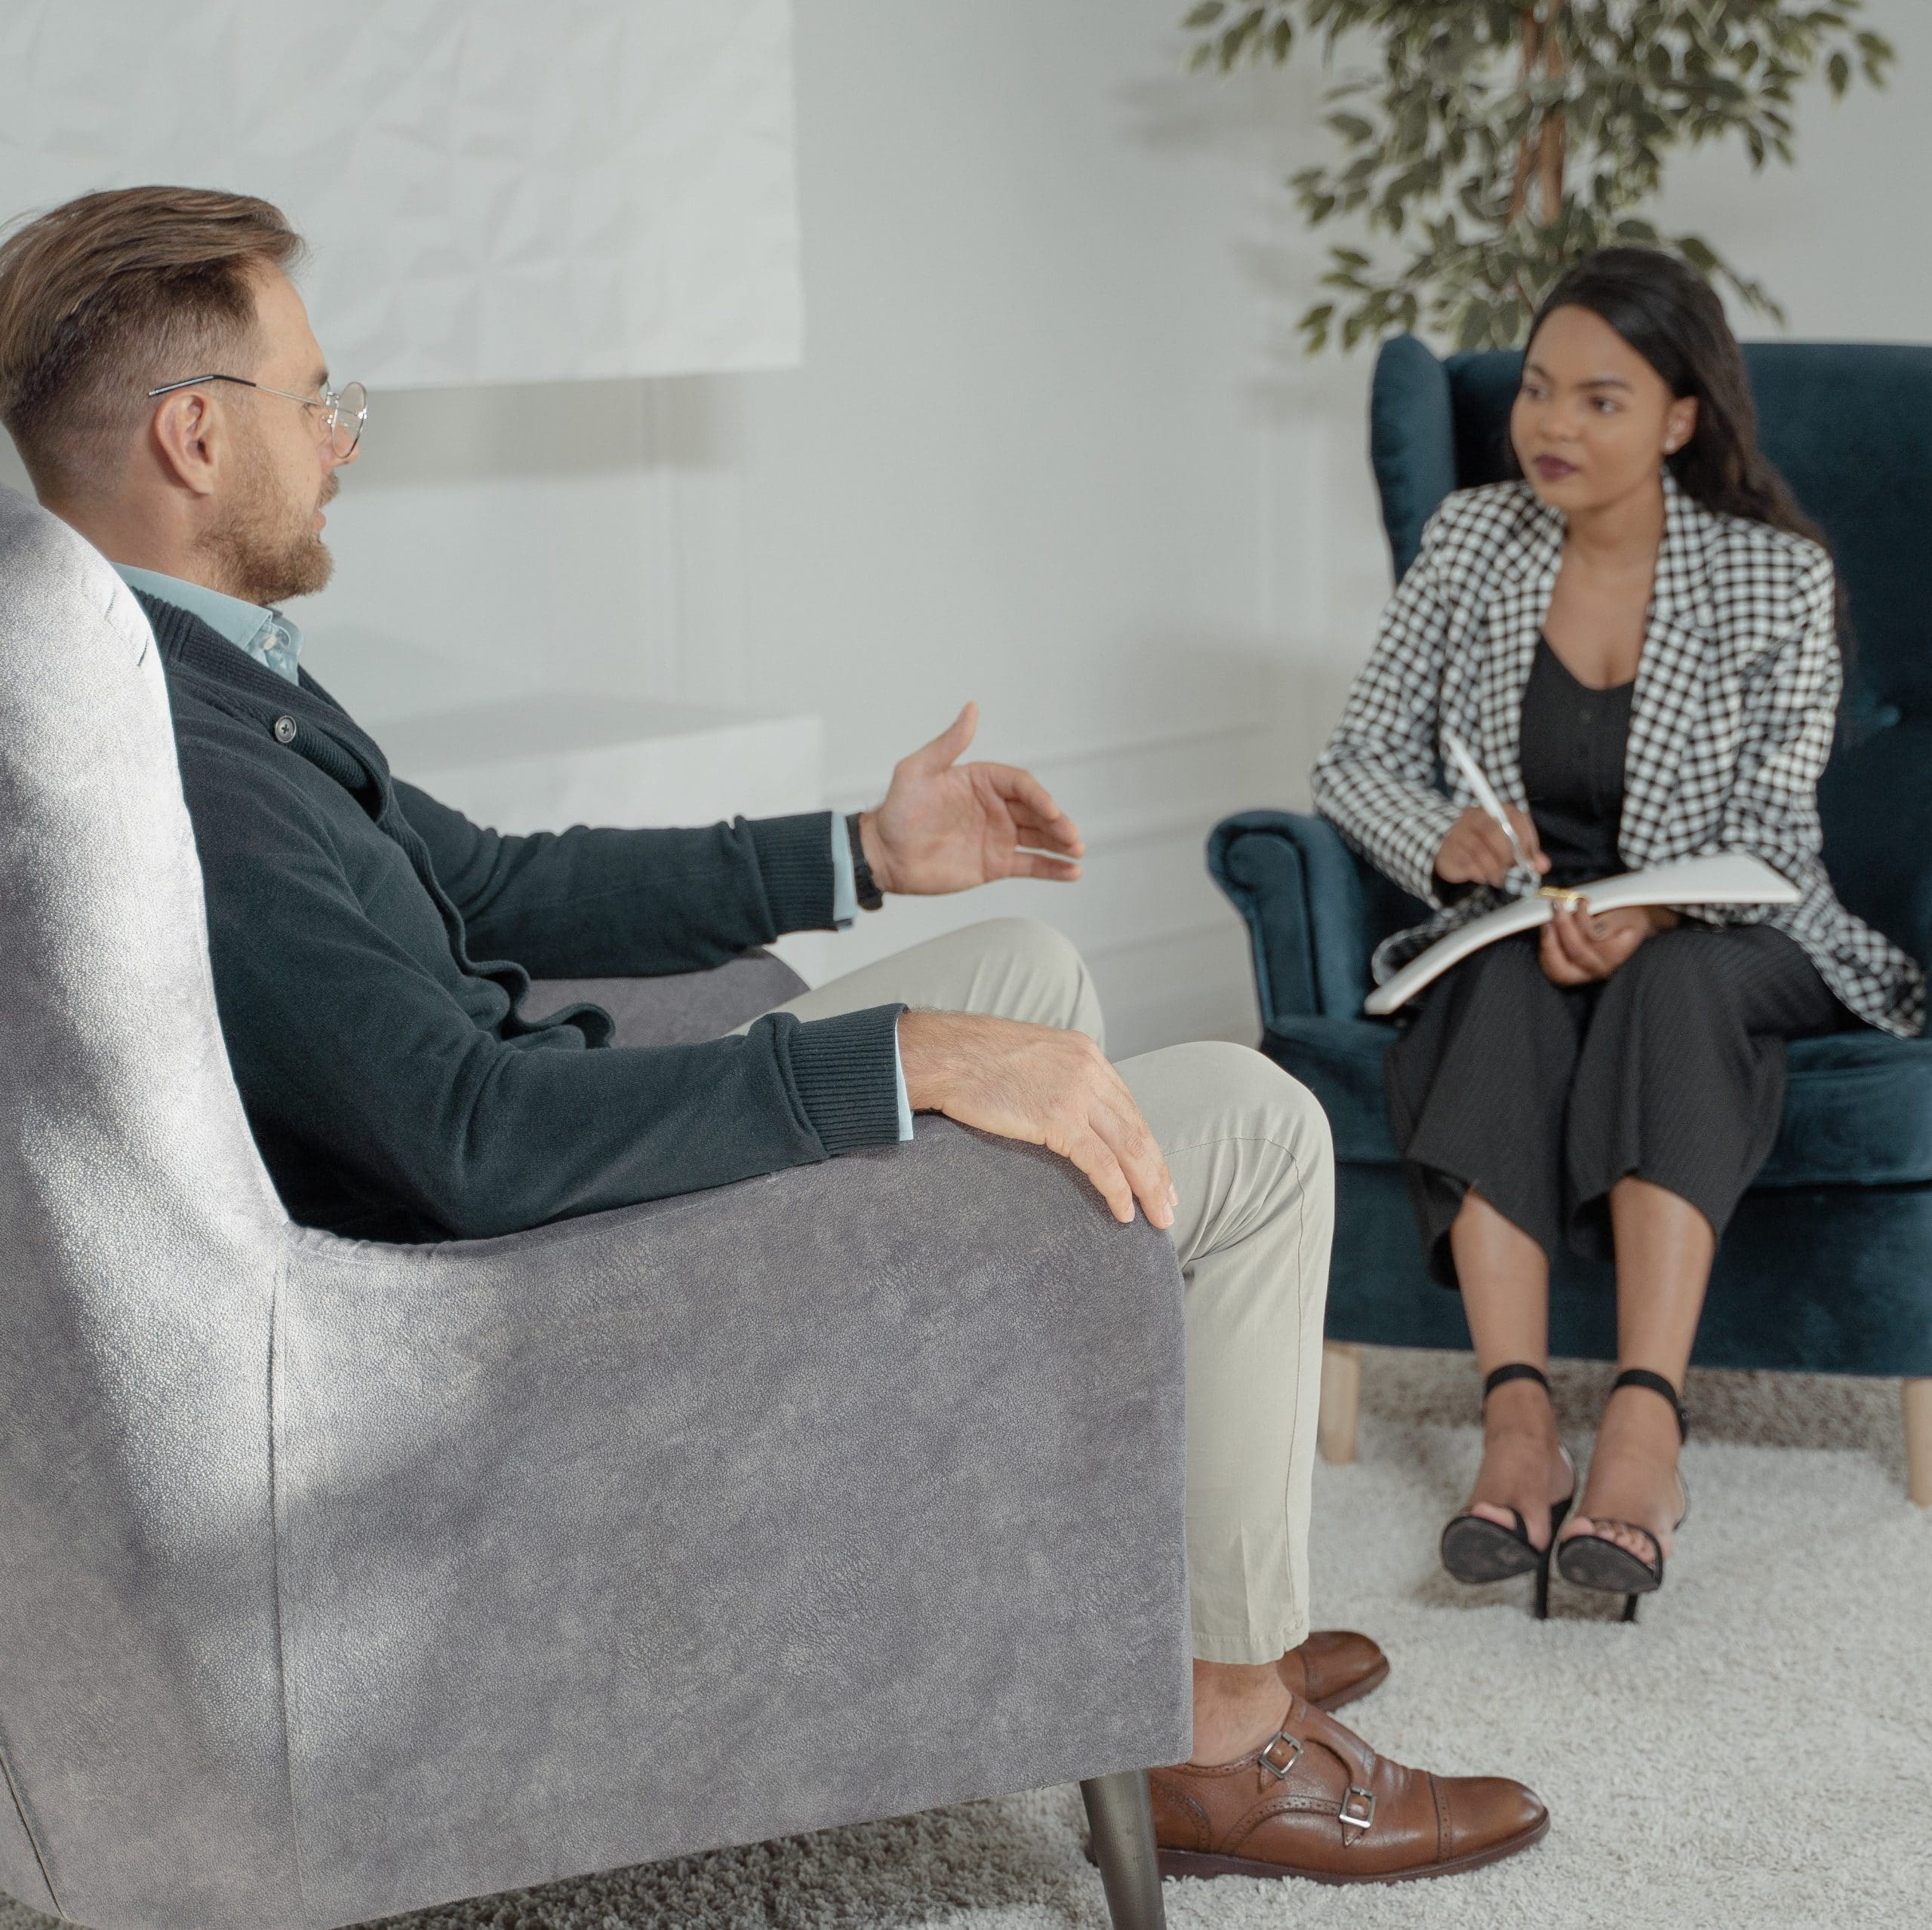 A man and a woman in business clothing sit in wingback chairs and talk.